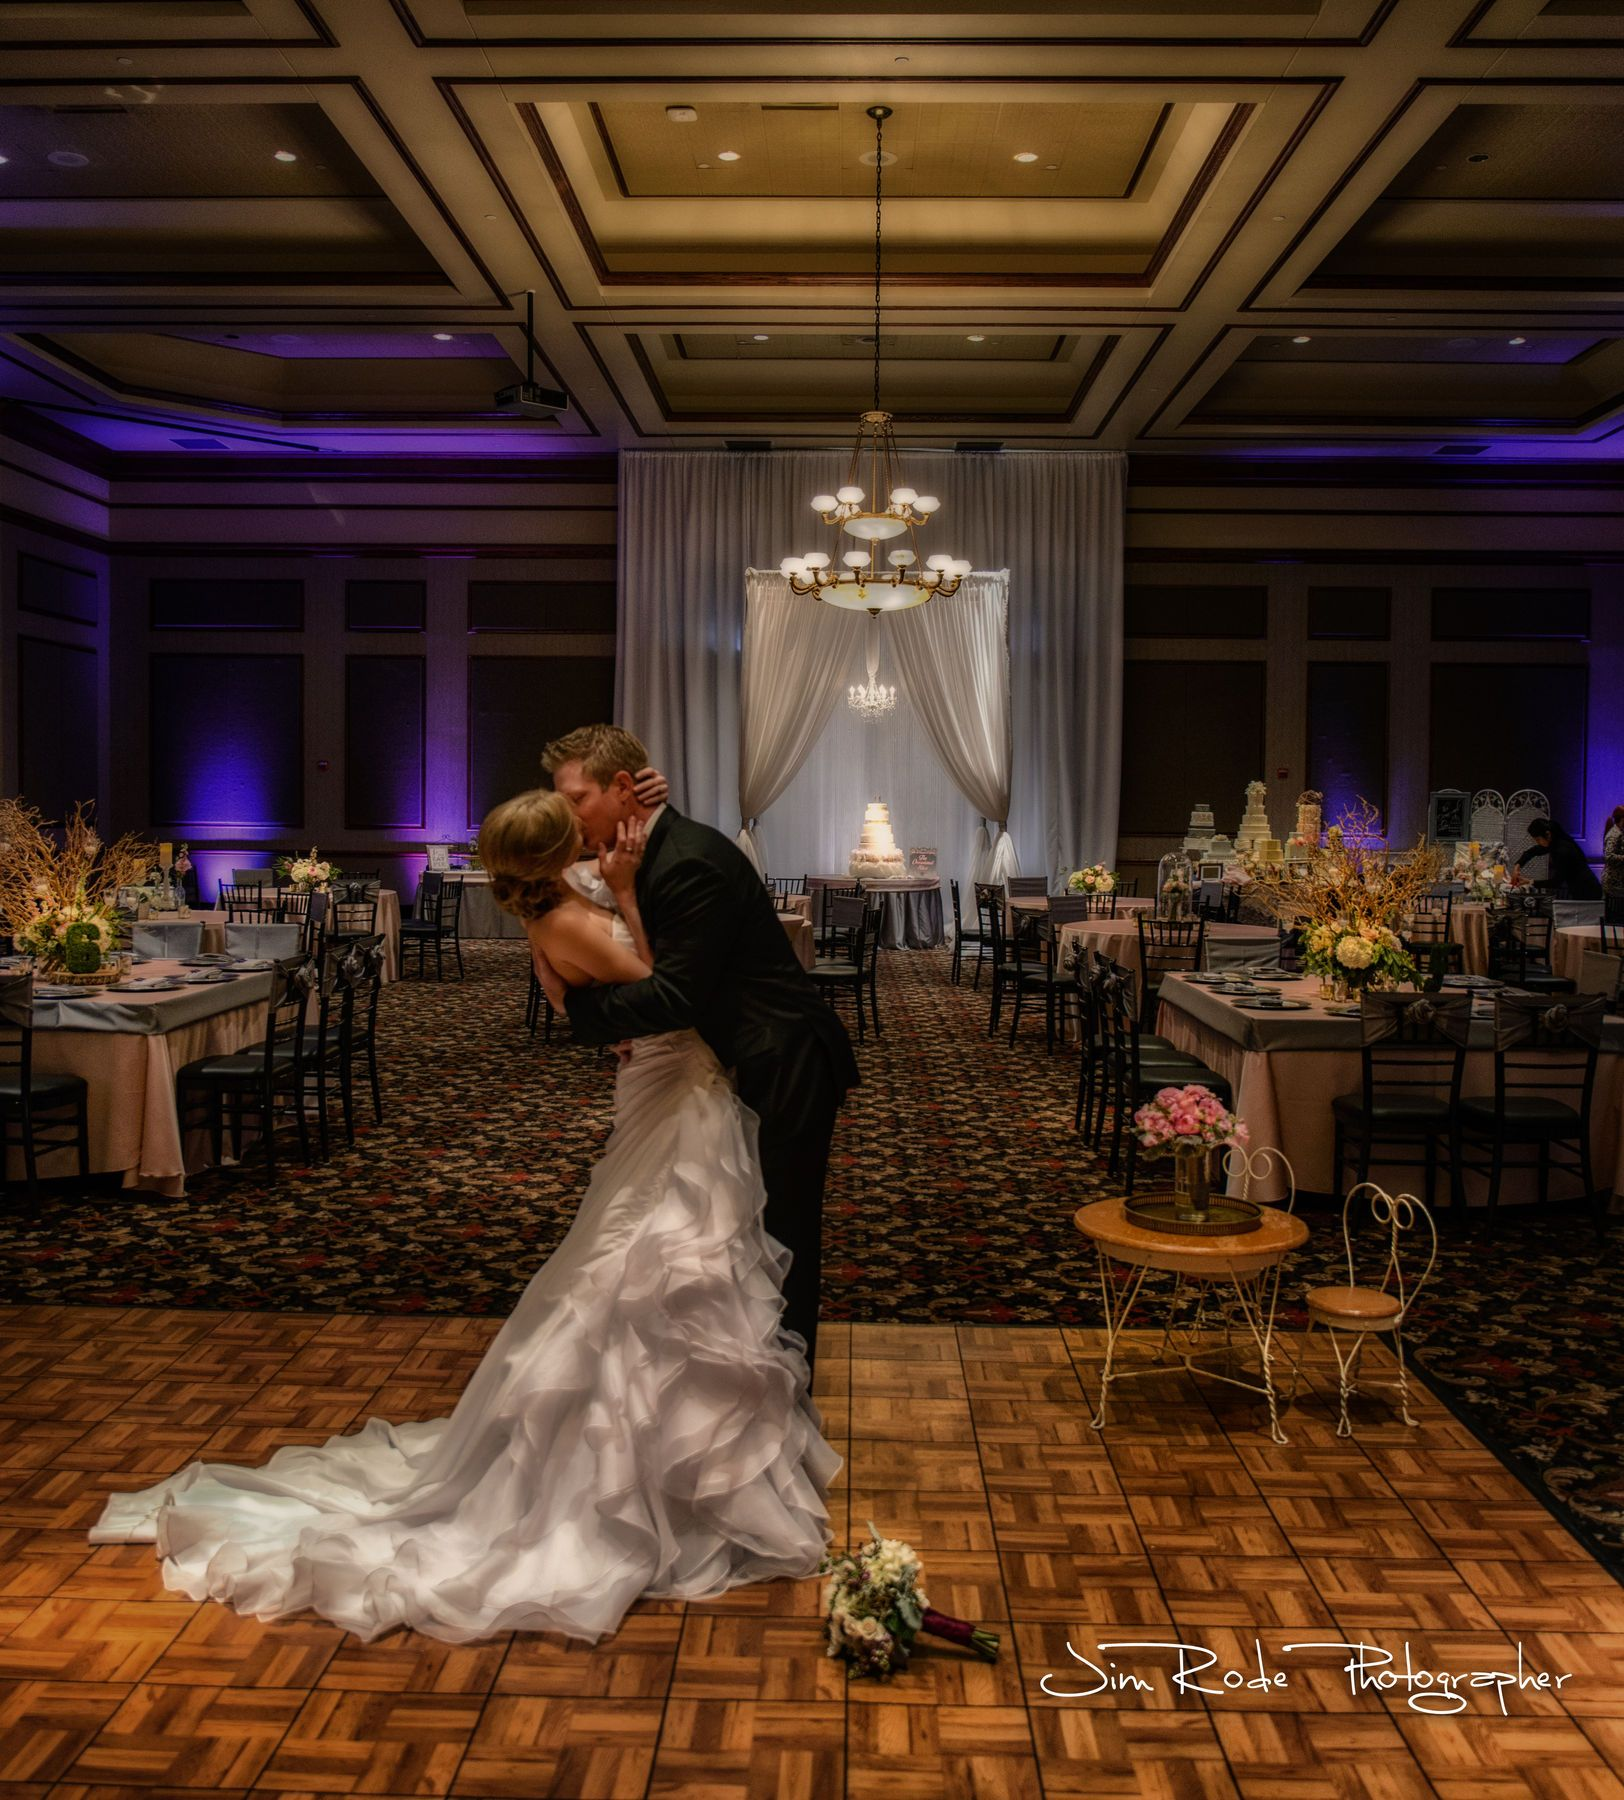 Shooting HDR allows the capture of the wedding details I love! Gown, bouquet on the floor, the draped cake, and that cute table for the kids to sit to watch the dancing on that parquet dance floor. Too much flash would turn her gown into a pasted-over snowy smear, light up the dance floor in one direction or another -spoiling the center of attention, and make even the cake disappear into a dark background. With HDR, everything is balanced. photo by Jim Rode Photographer